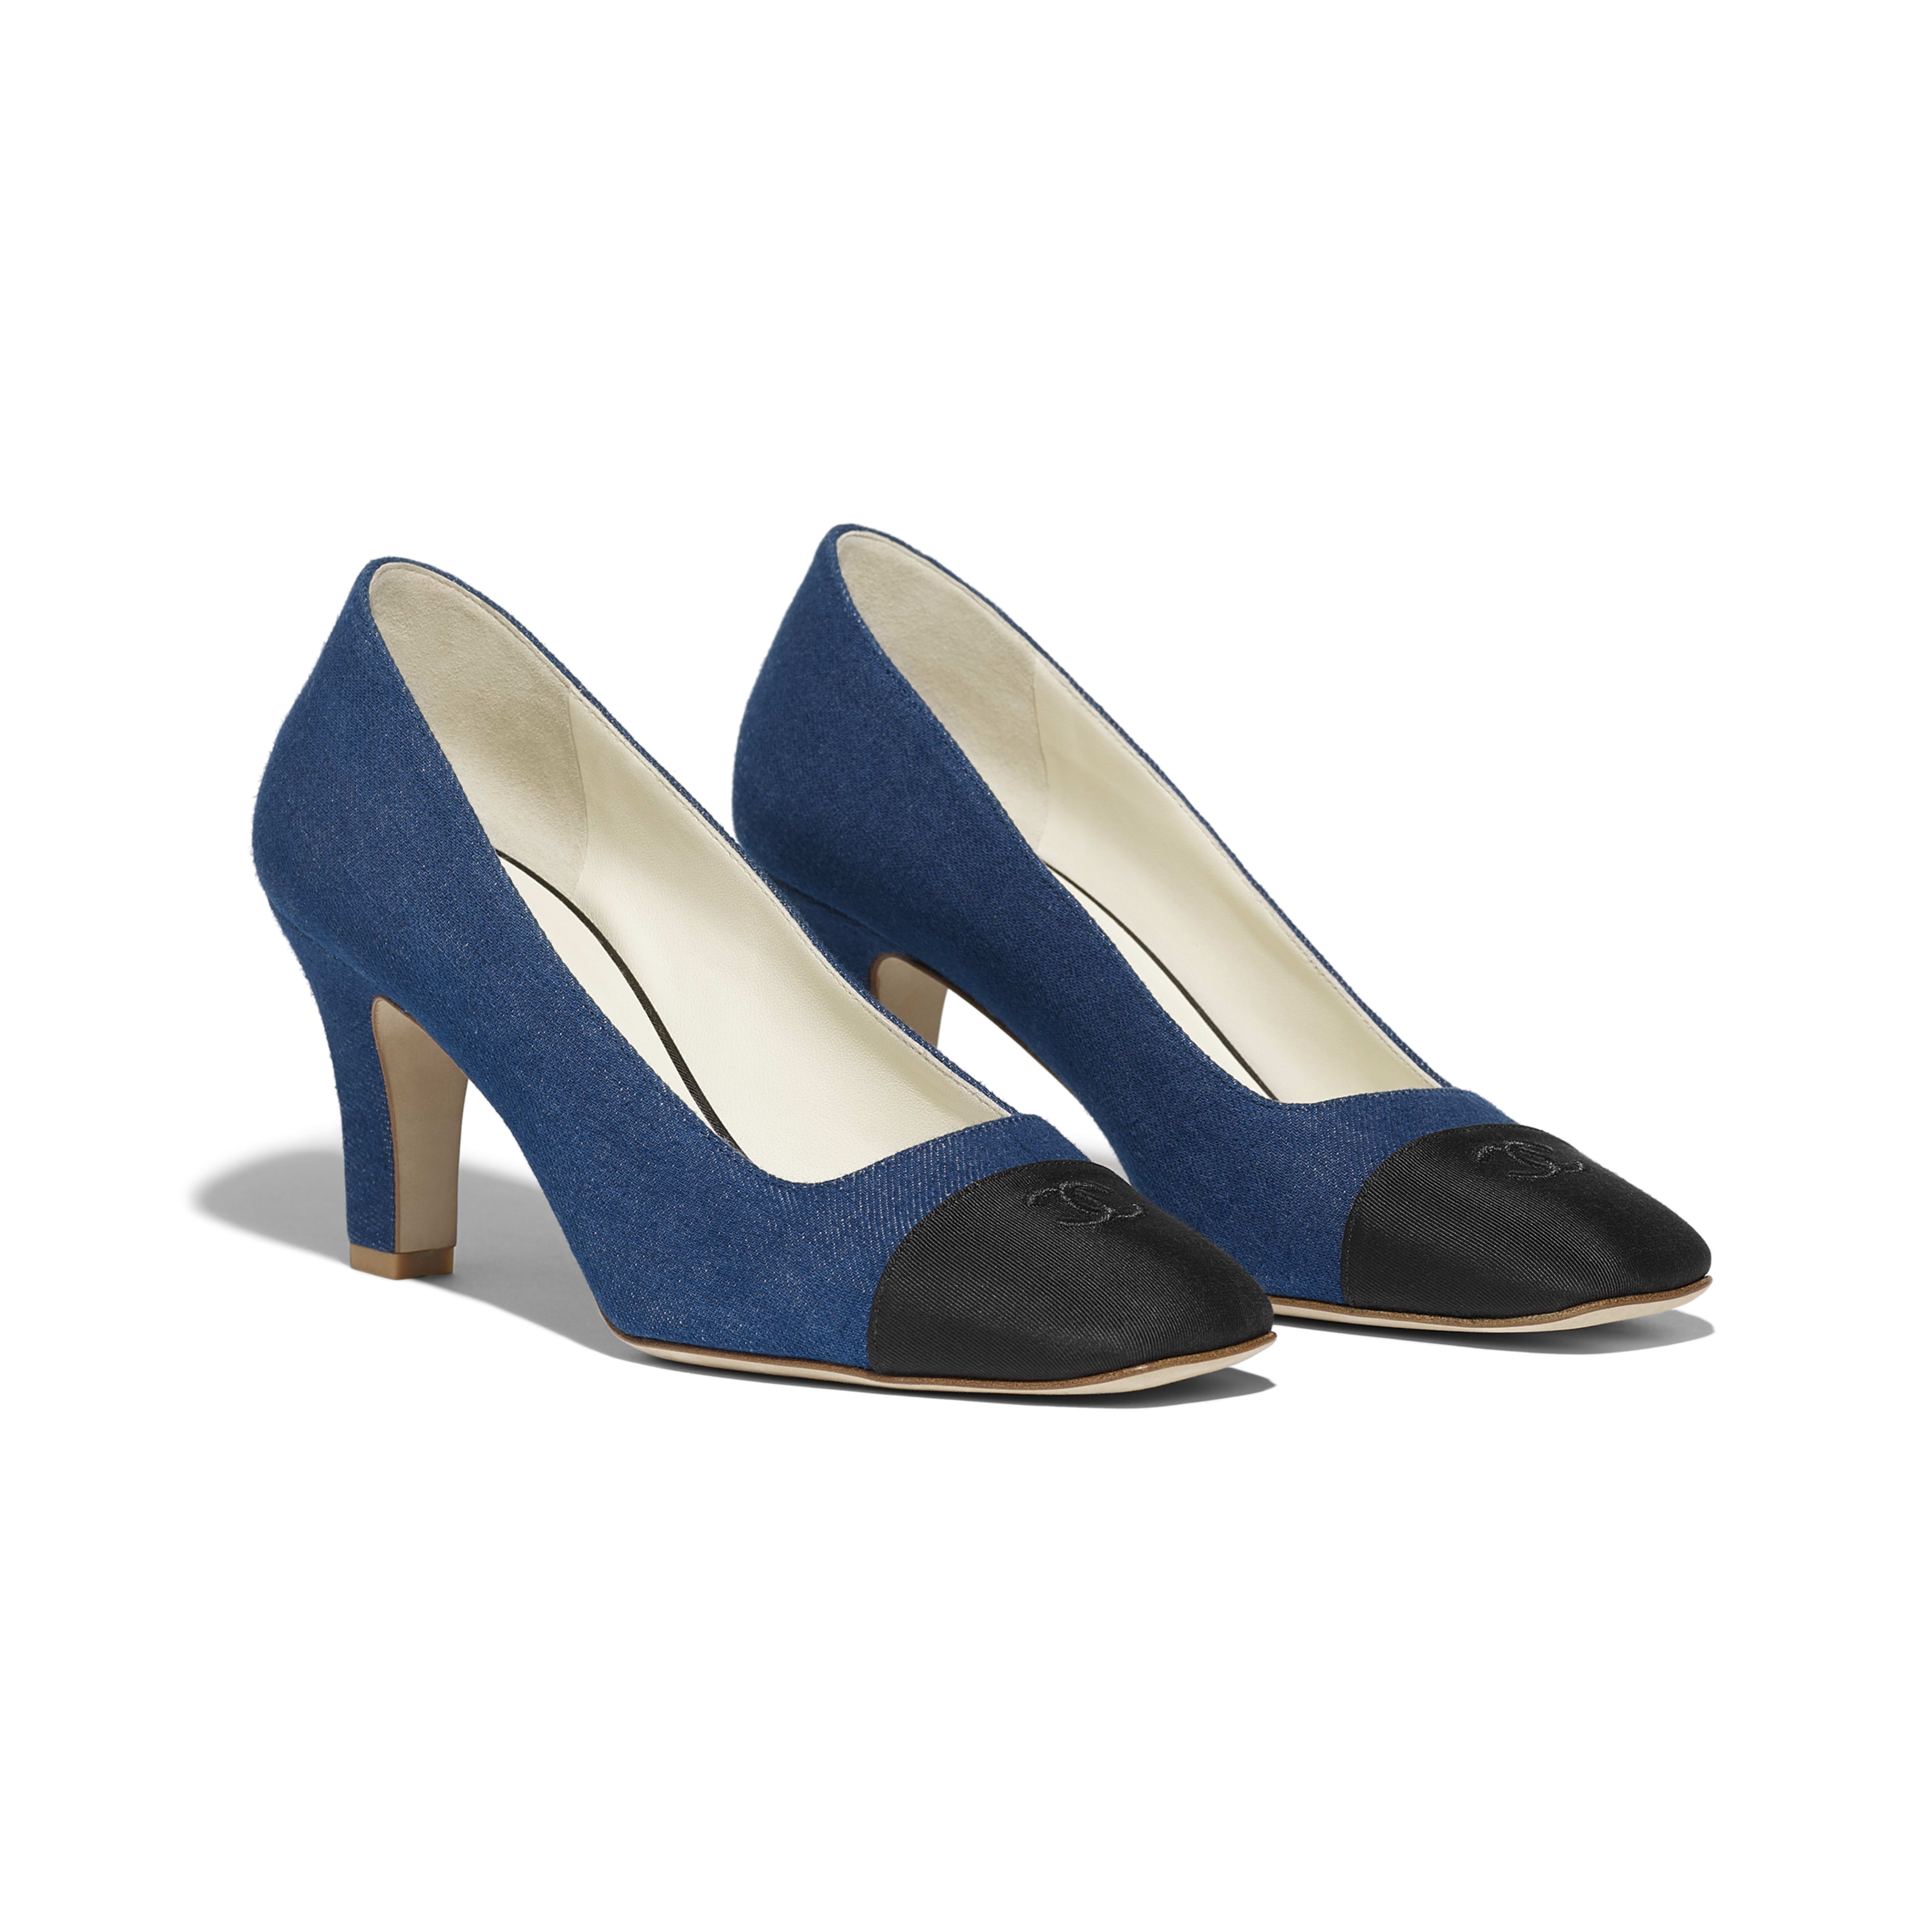 Pumps - Blue & Black - Fabric & Grosgrain - Alternative view - see full sized version